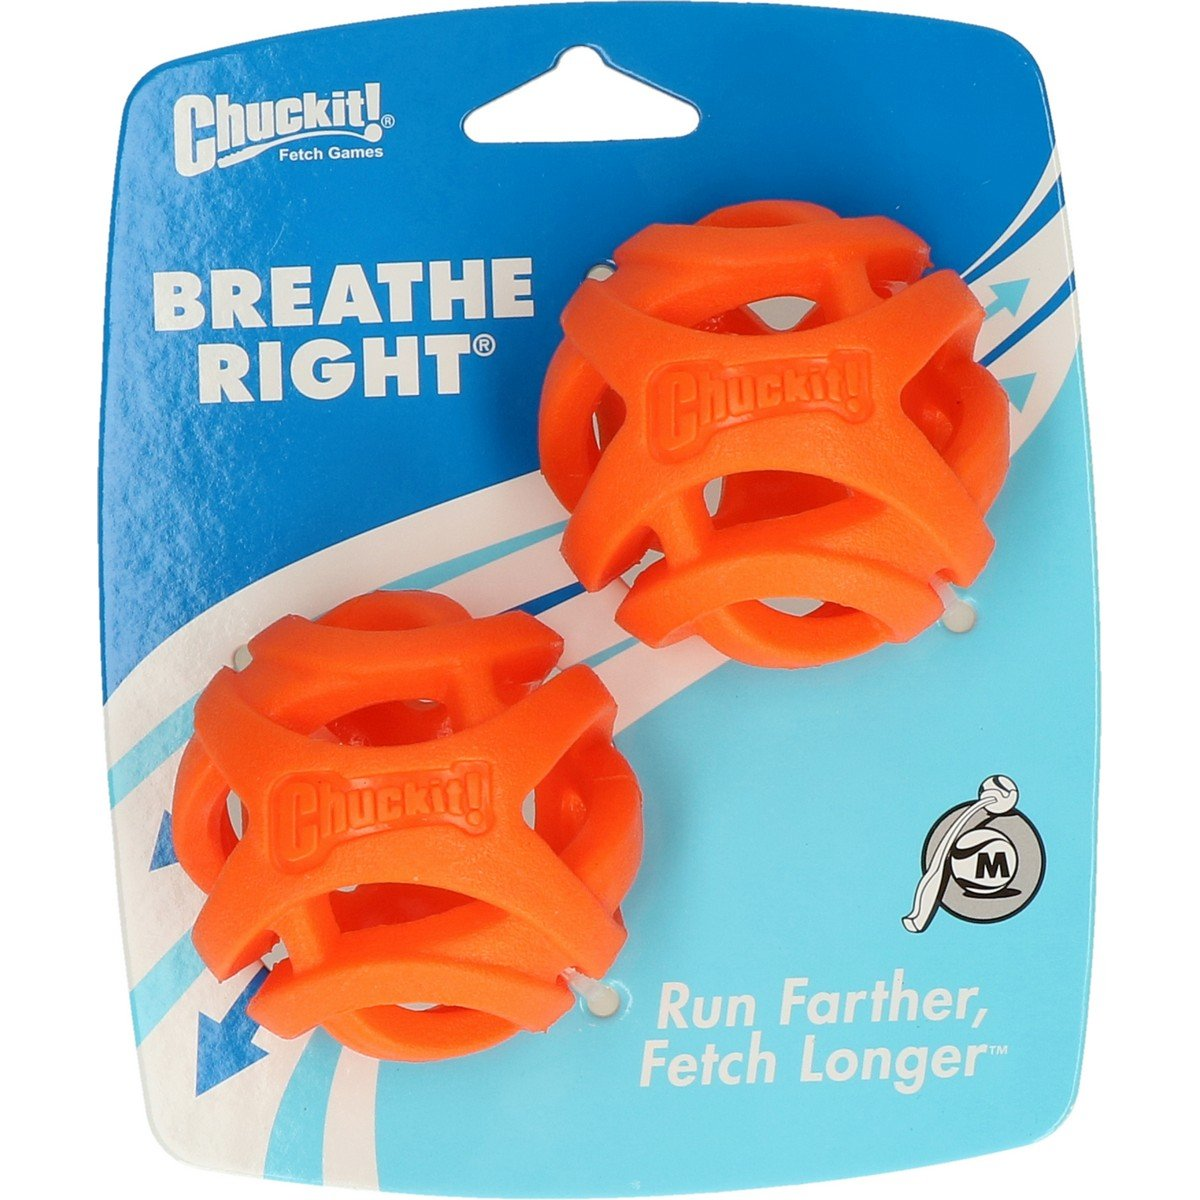 Afbeelding van Chuckit Bal Breathe Right Fetch 2 pack Oranje 6,4cm